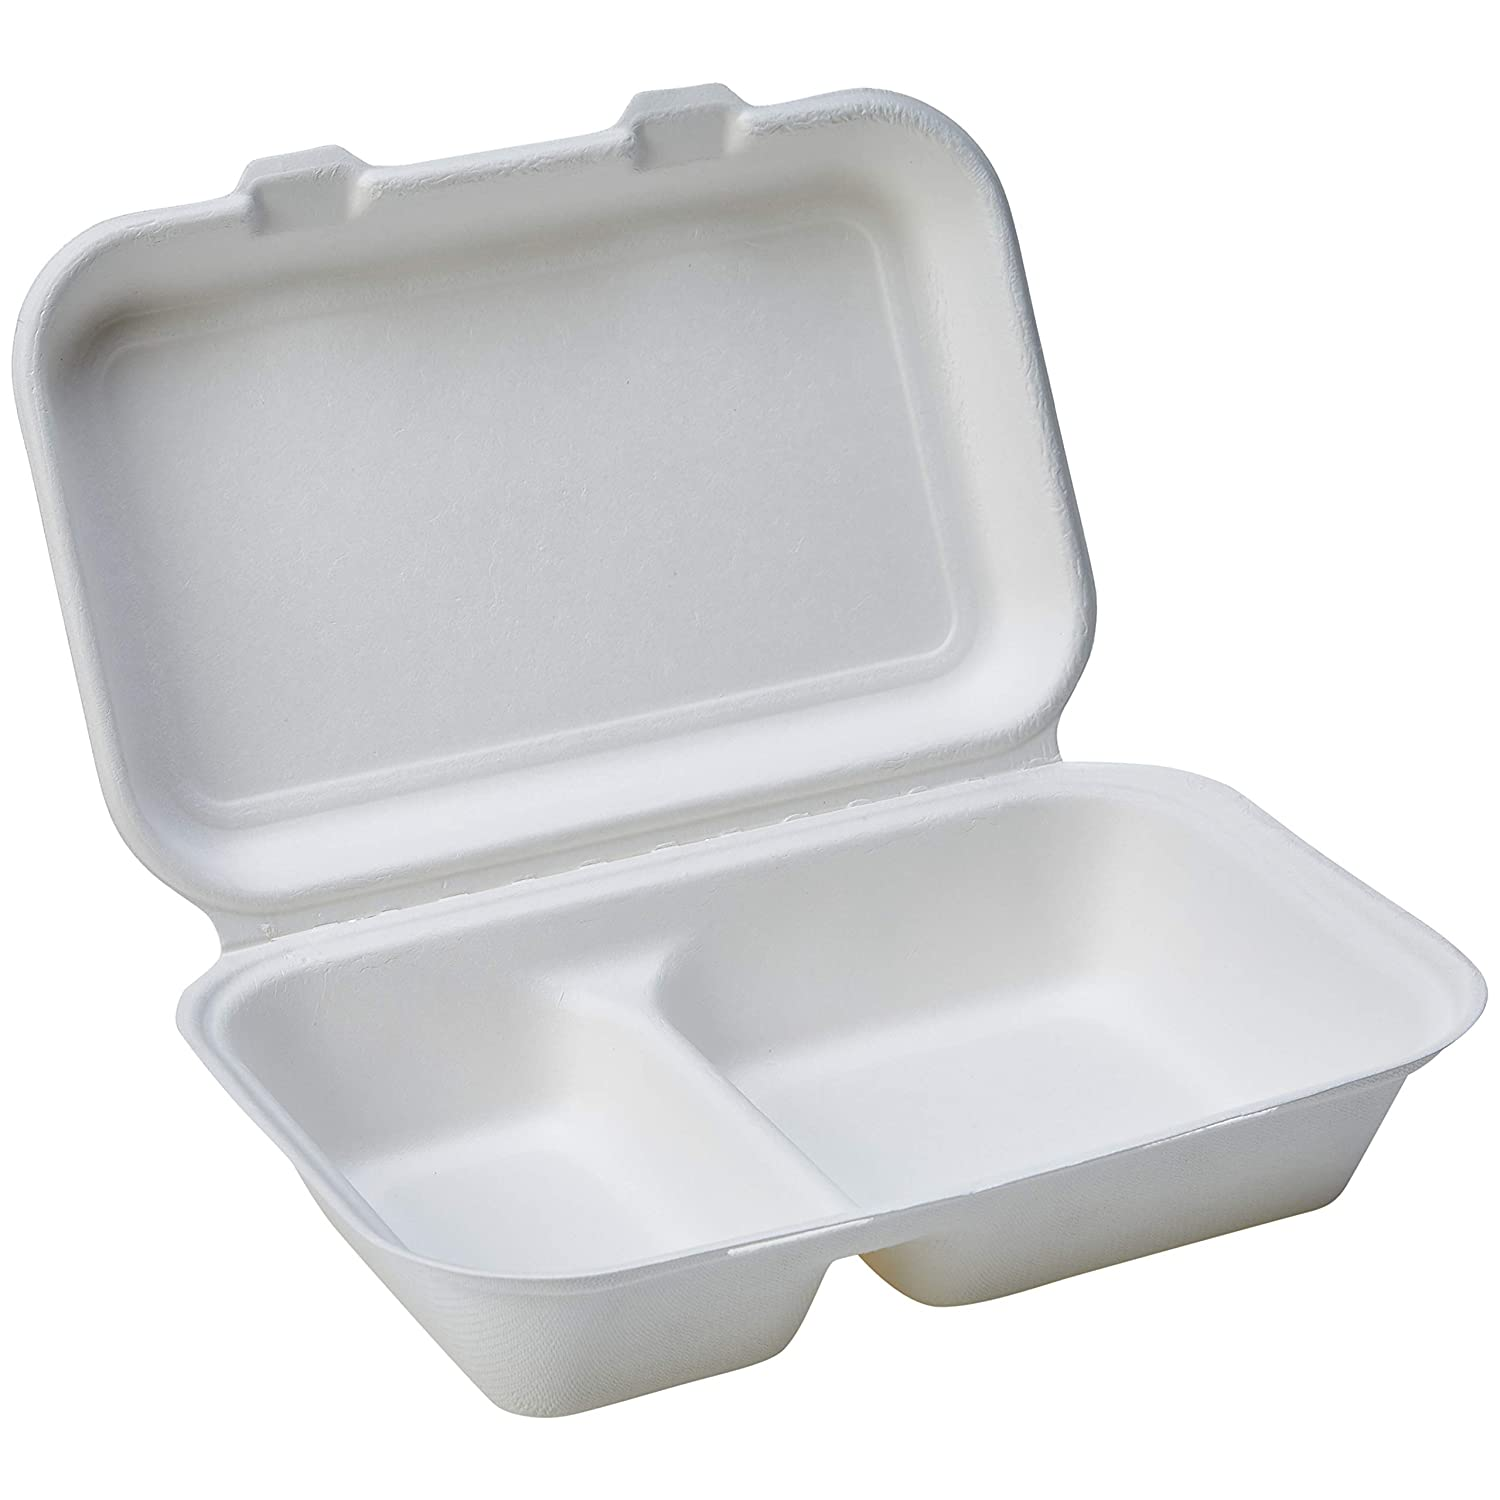 "AmazonBasics Compostable 2-Compartment Clamshell Hinged Food Container, 9.8"" x 6.4"" x 2.7"", Pack of 250"